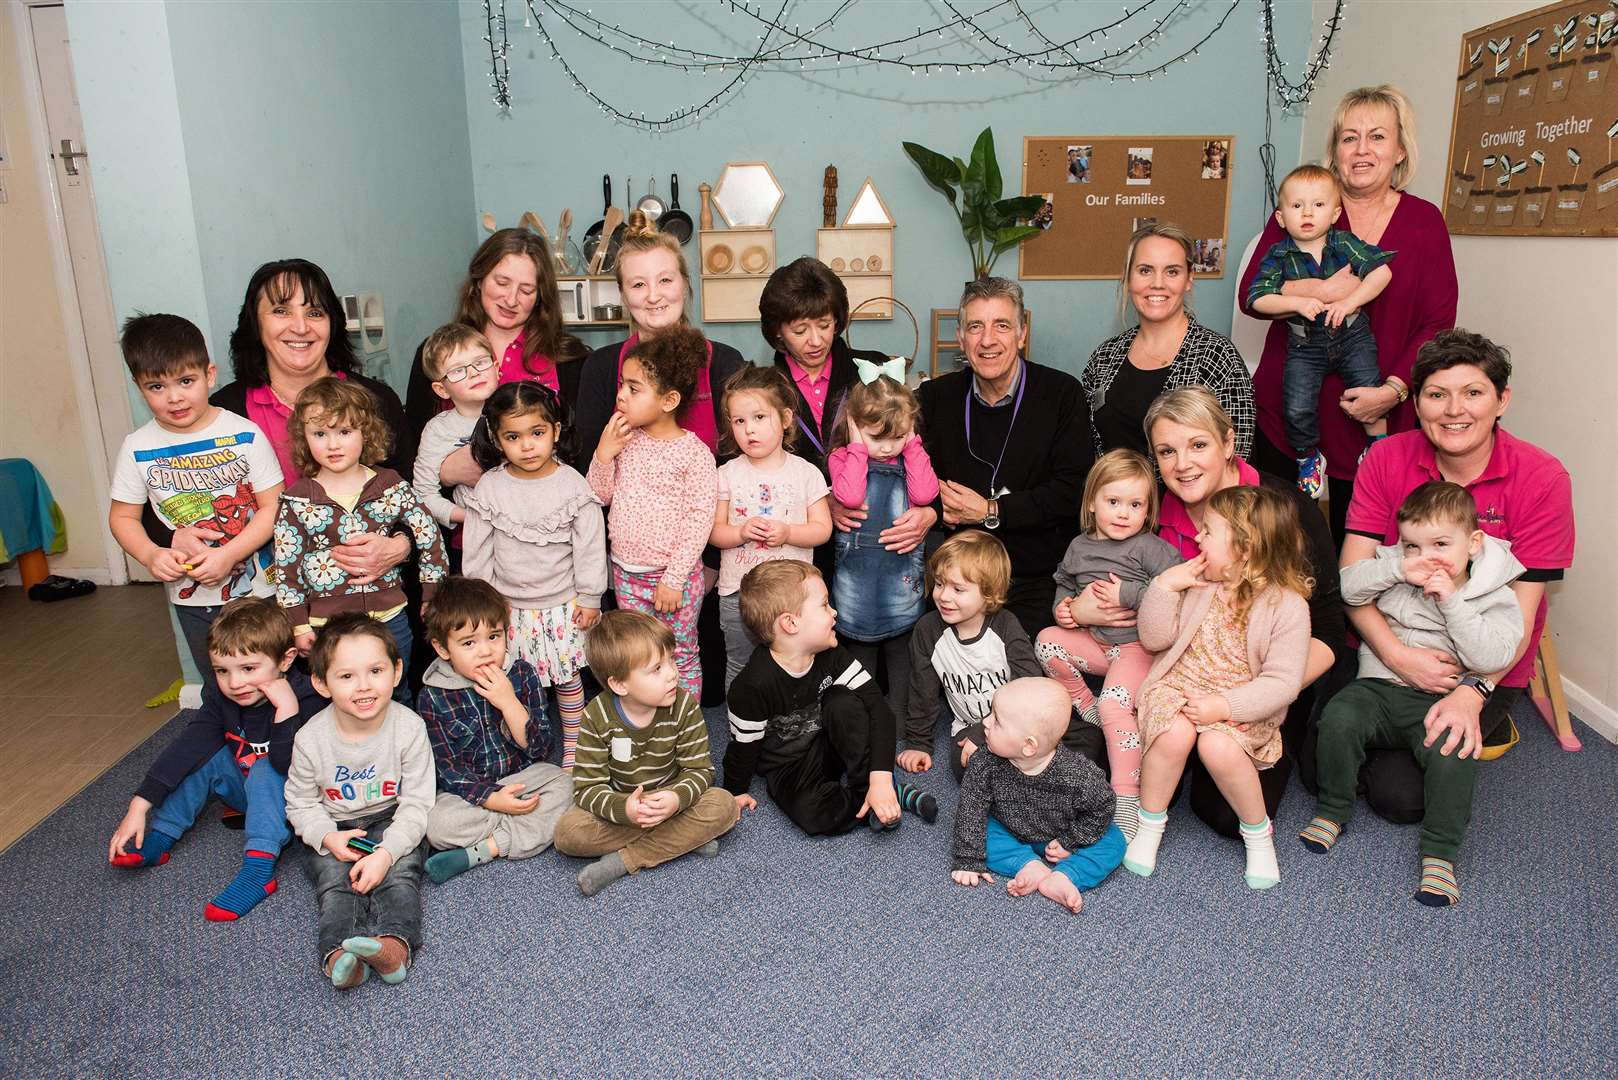 Woodpecker's Private Nursery, Melford Road, Sudbury .Woodpecker's Private Nursery has celebrated its 18th anniversary. Picture by Mark Westley. (6983641)